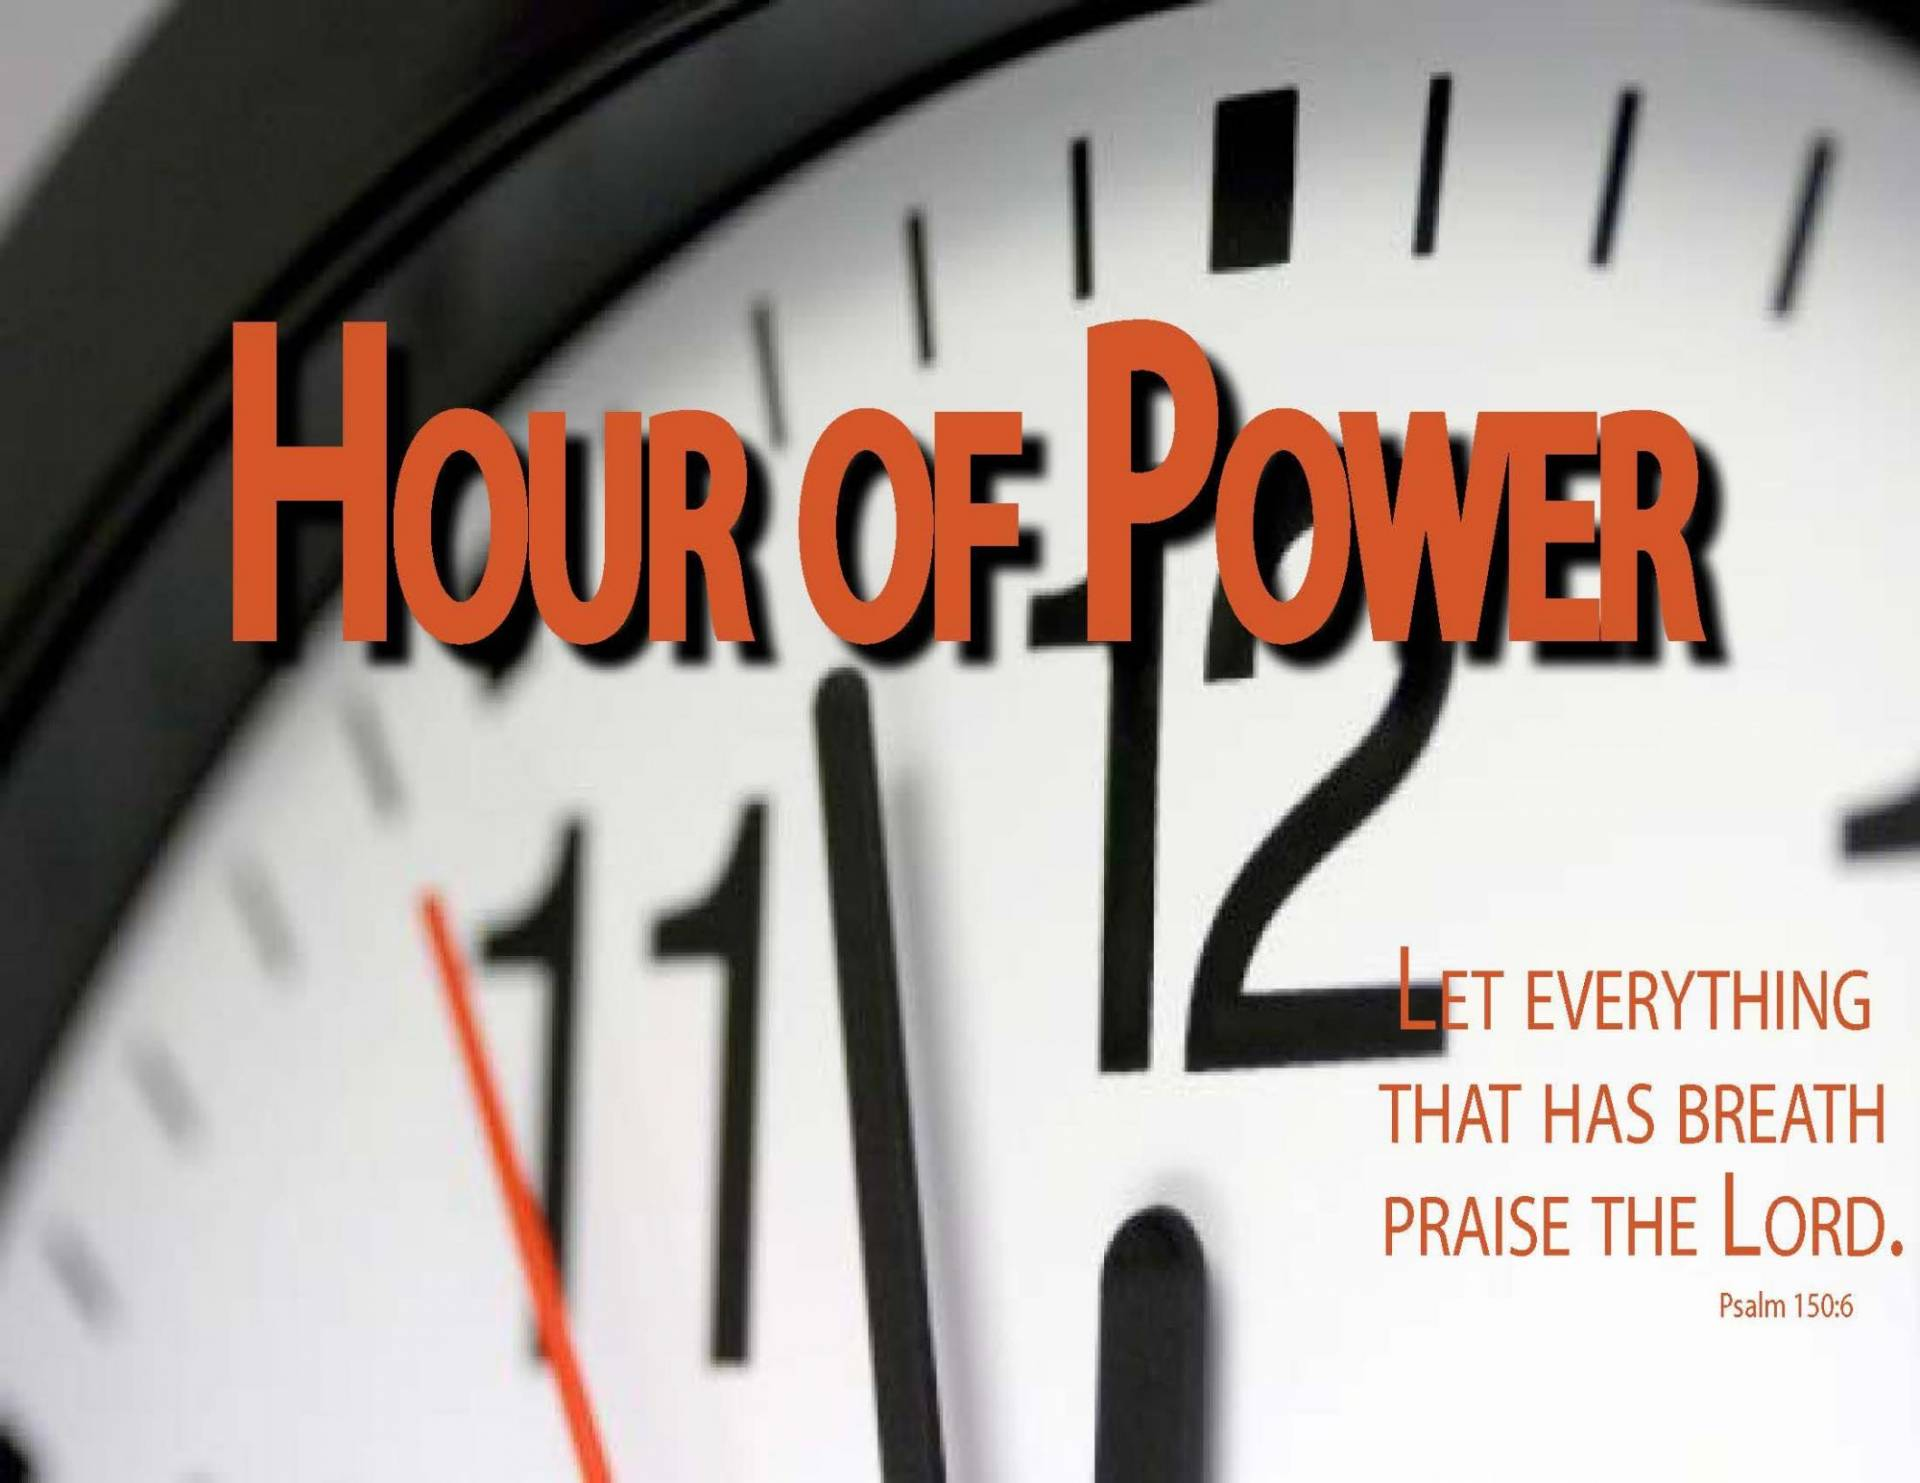 Hour of Power Worship Service with guest preacher Rev. Rashad D. Grove